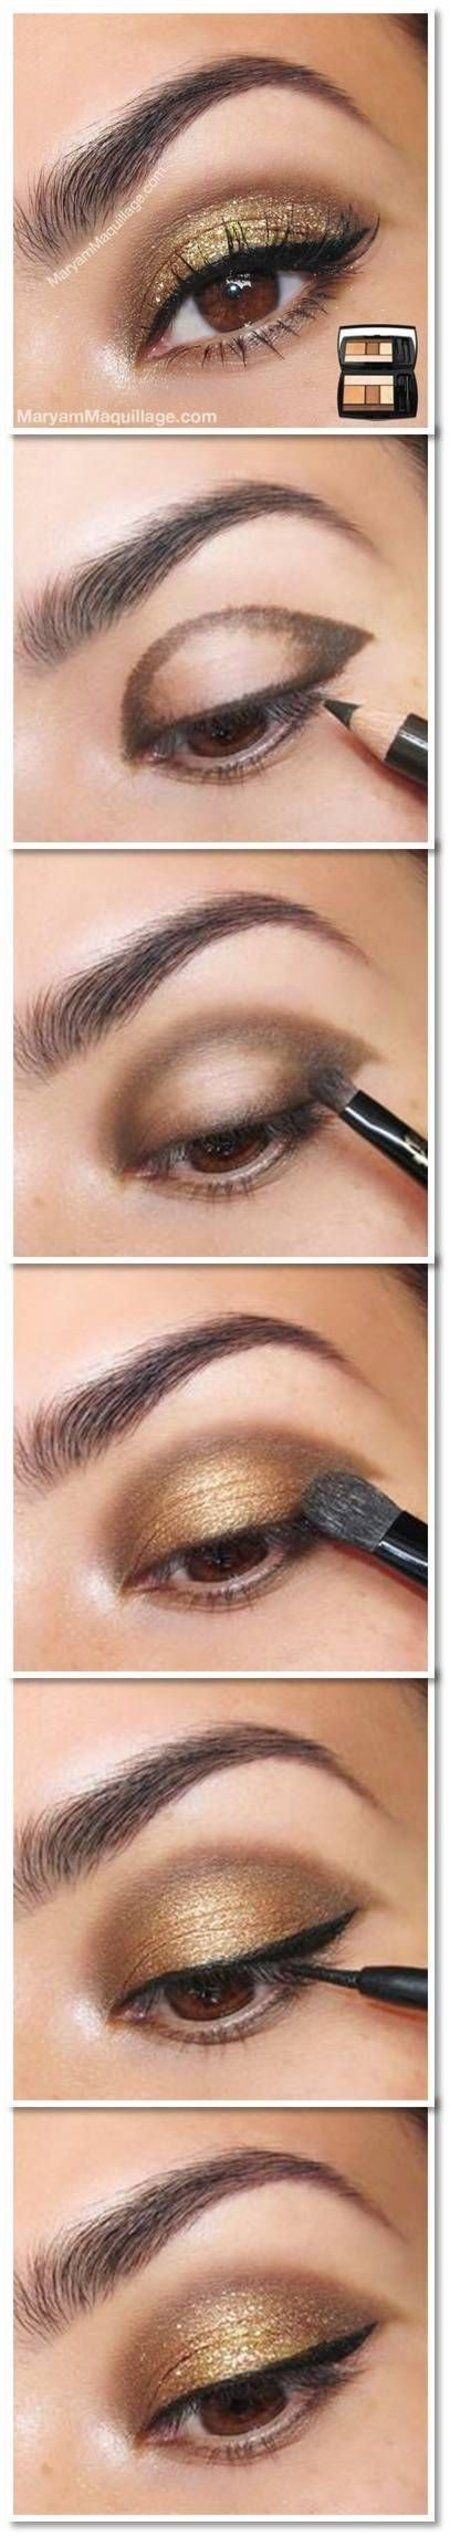 HOW TO: Gold glitter eye look Mary Kay mineral eye color Amber Blaze, Sienna or Cinnabar black liquid eyeliner by mickichele